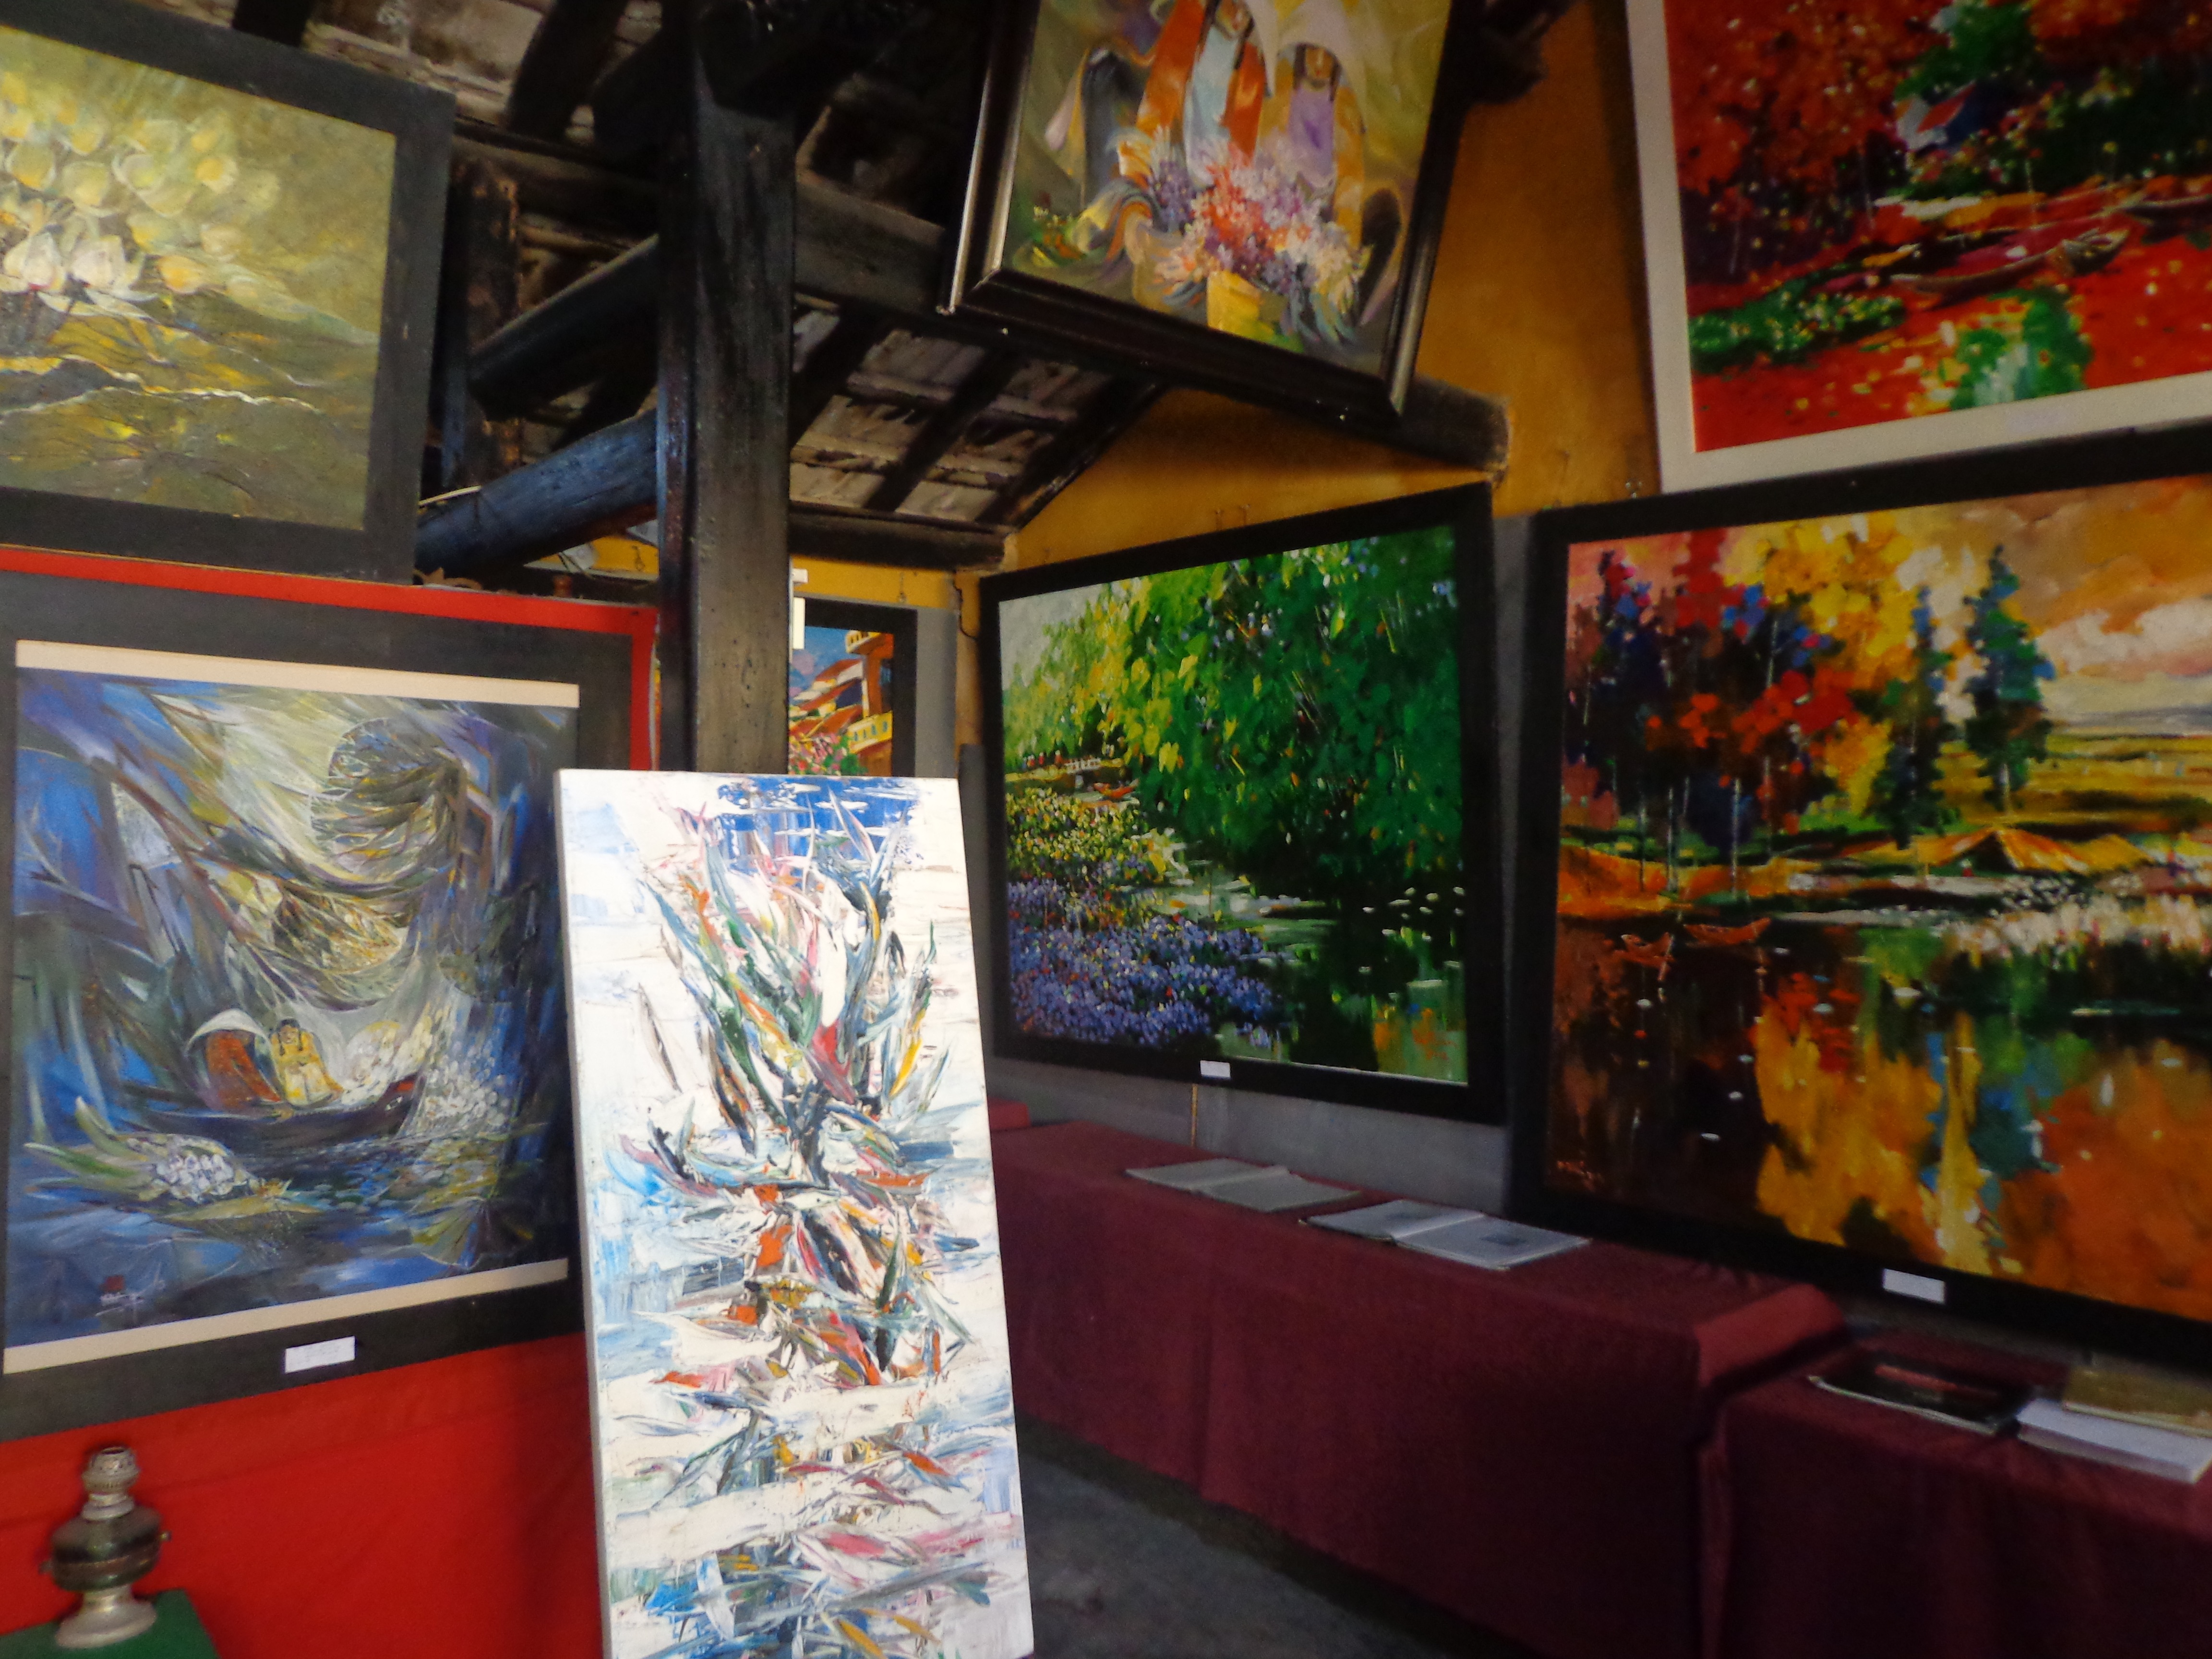 The Hoi An art gallery contains many paintings by renowned and up coming Vietnamese artists. This small gallery can be easily missed amidst the chaos of central market.